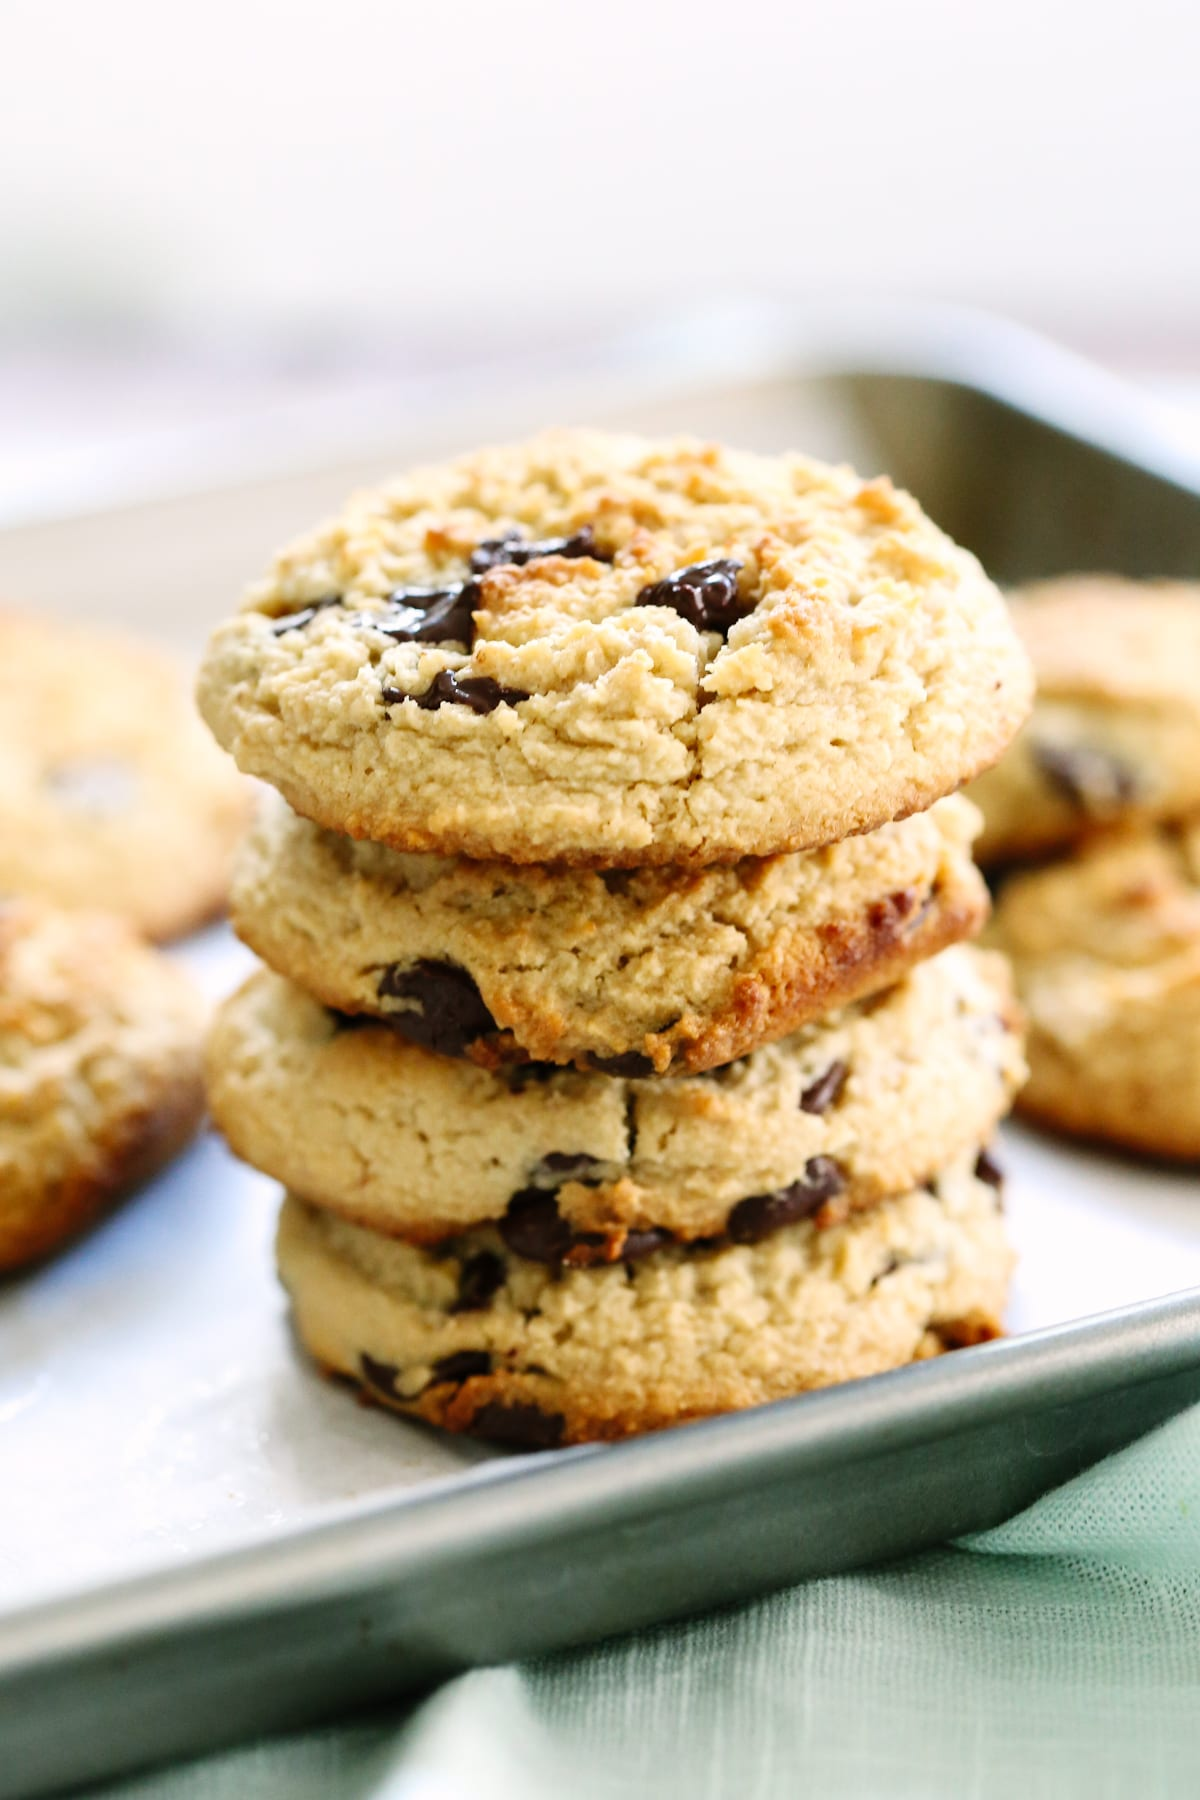 Miracle Almond Flour Chocolate Chip Cookies - Live Simply